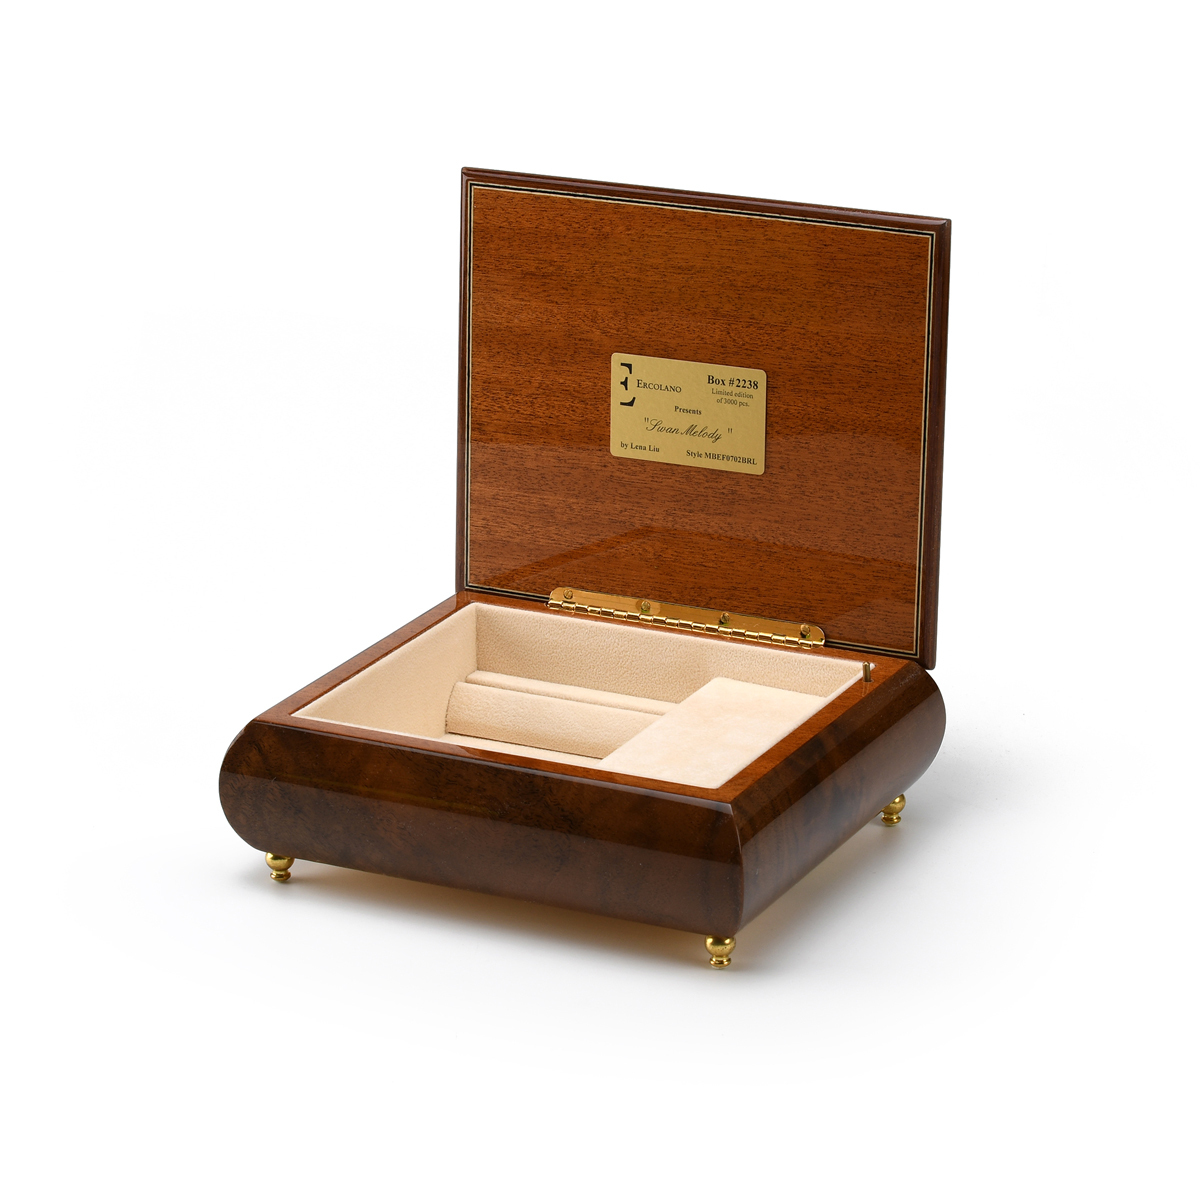 Exquisite Wood Tone Ercolano Musical Jewelry Box - Swan Melody by Lena Liu